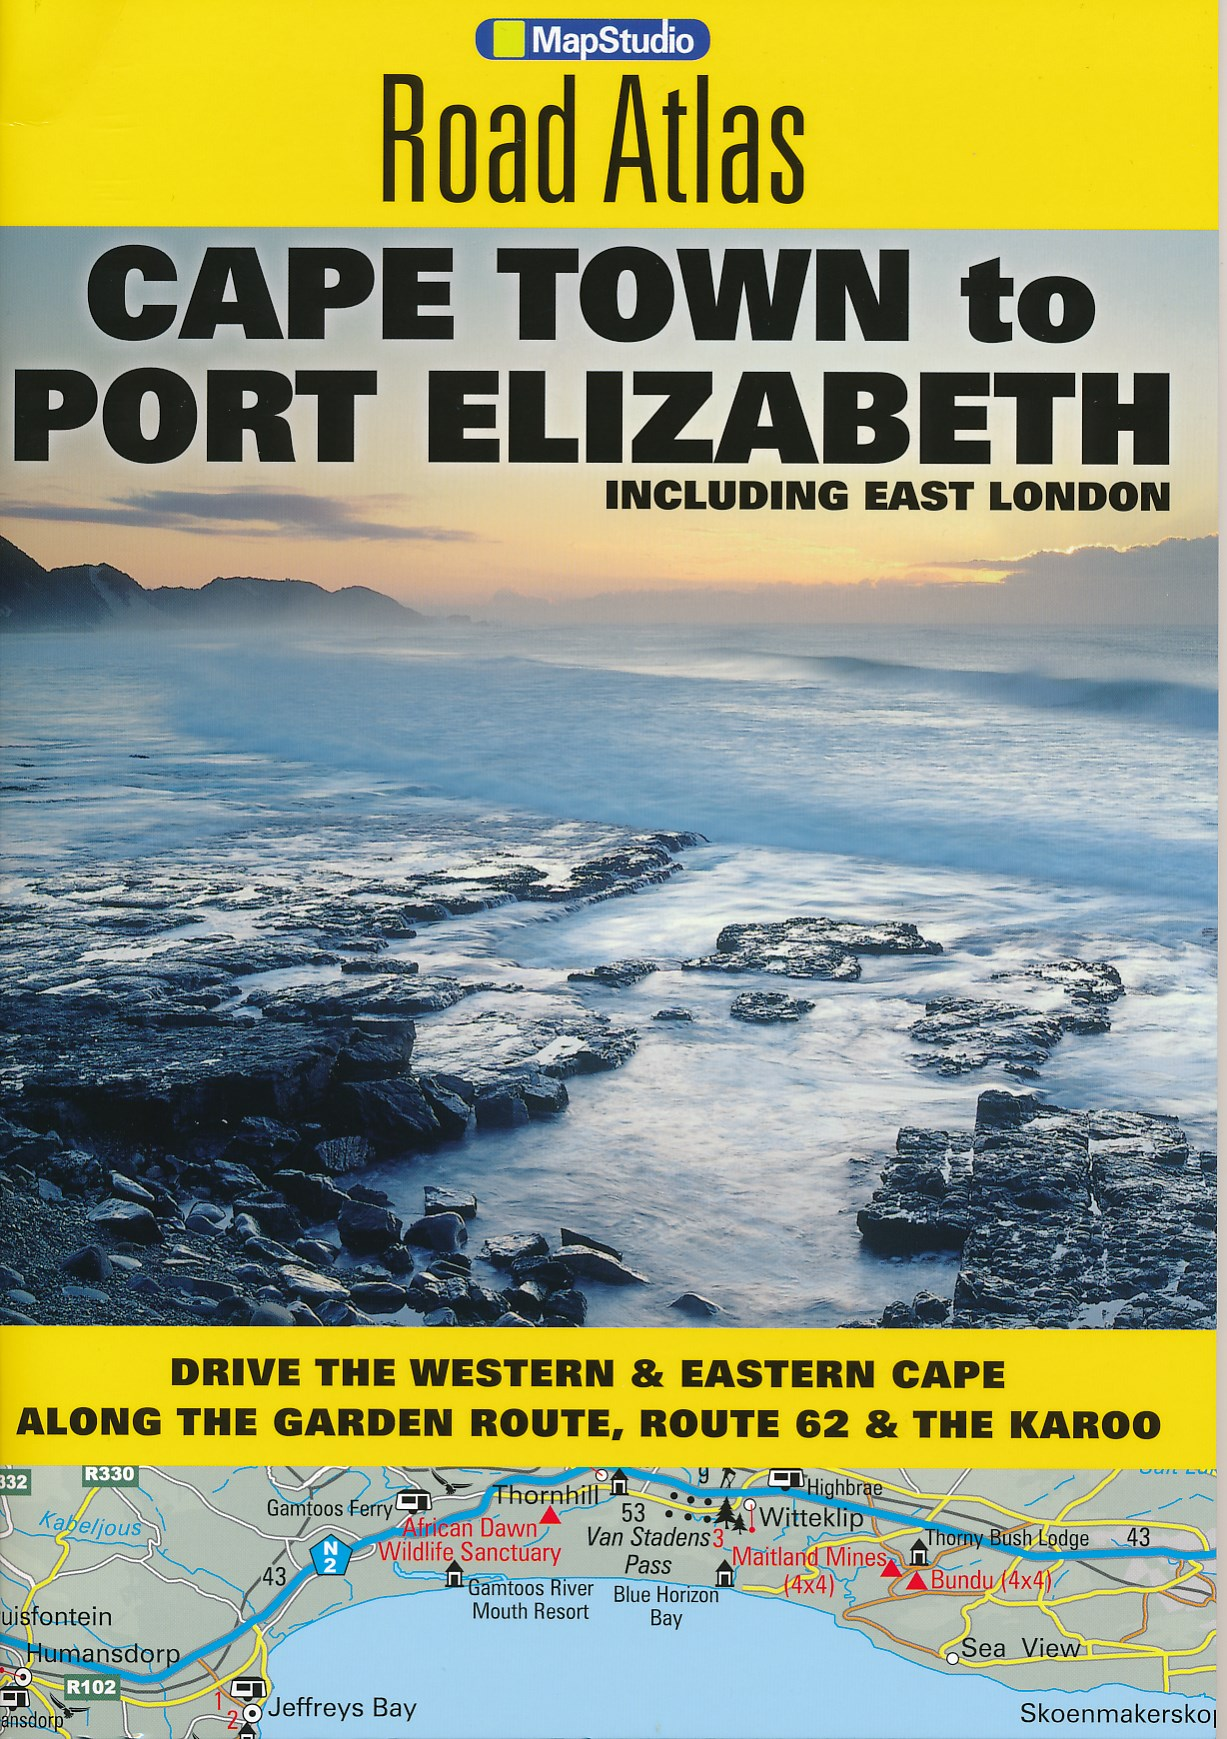 Wegenatlas Cape Town to Port Elizabeth Road Atlas   Mapstudio